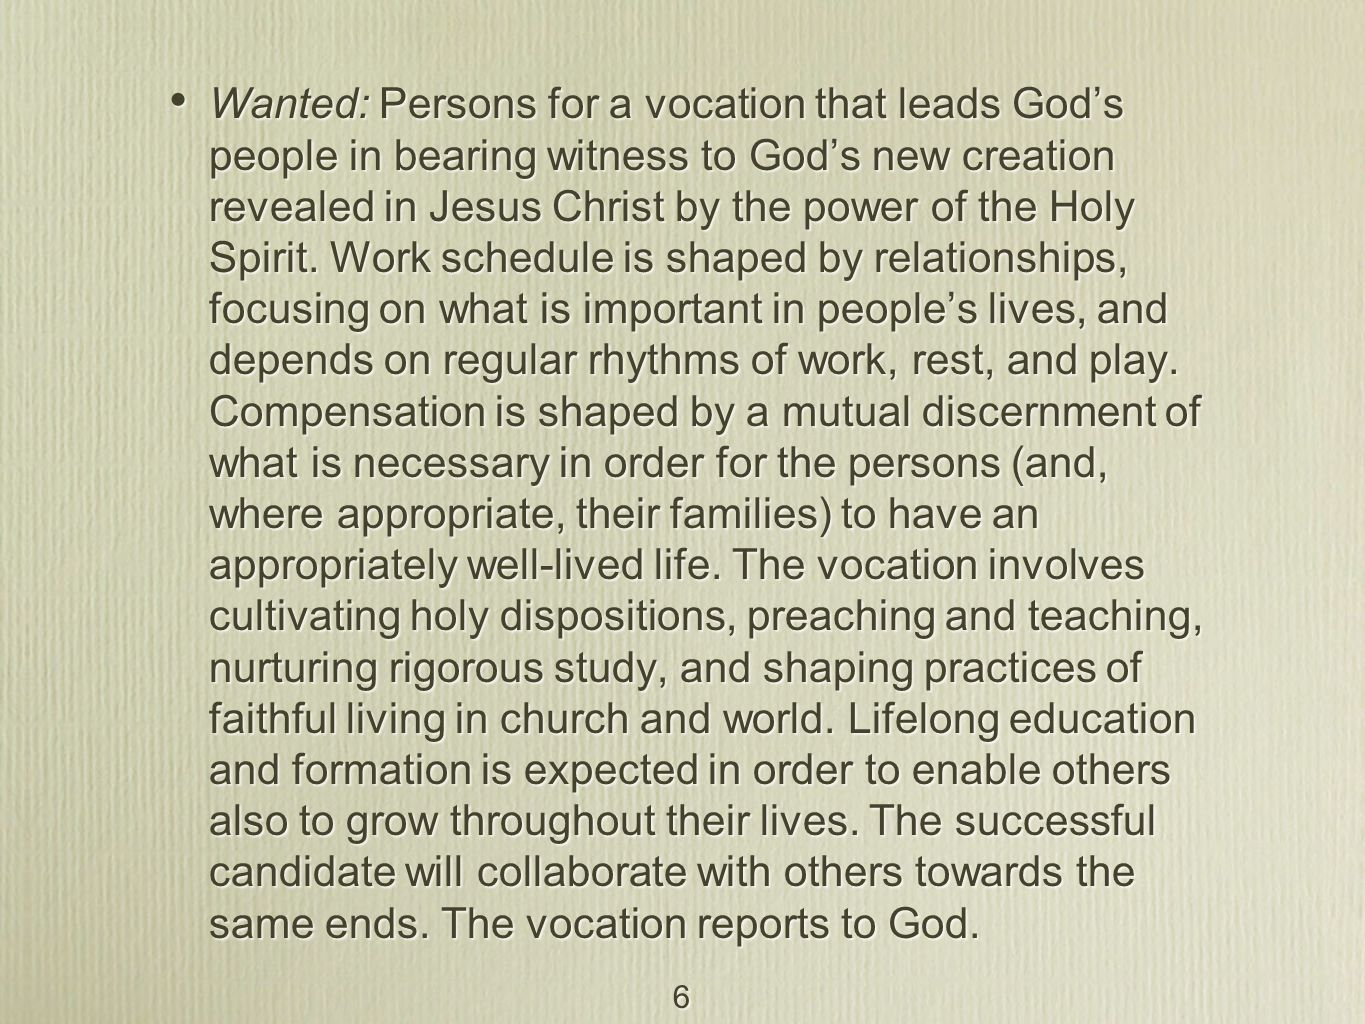 6 Wanted: Persons for a vocation that leads God's people in bearing witness to God's new creation revealed in Jesus Christ by the power of the Holy Spirit.